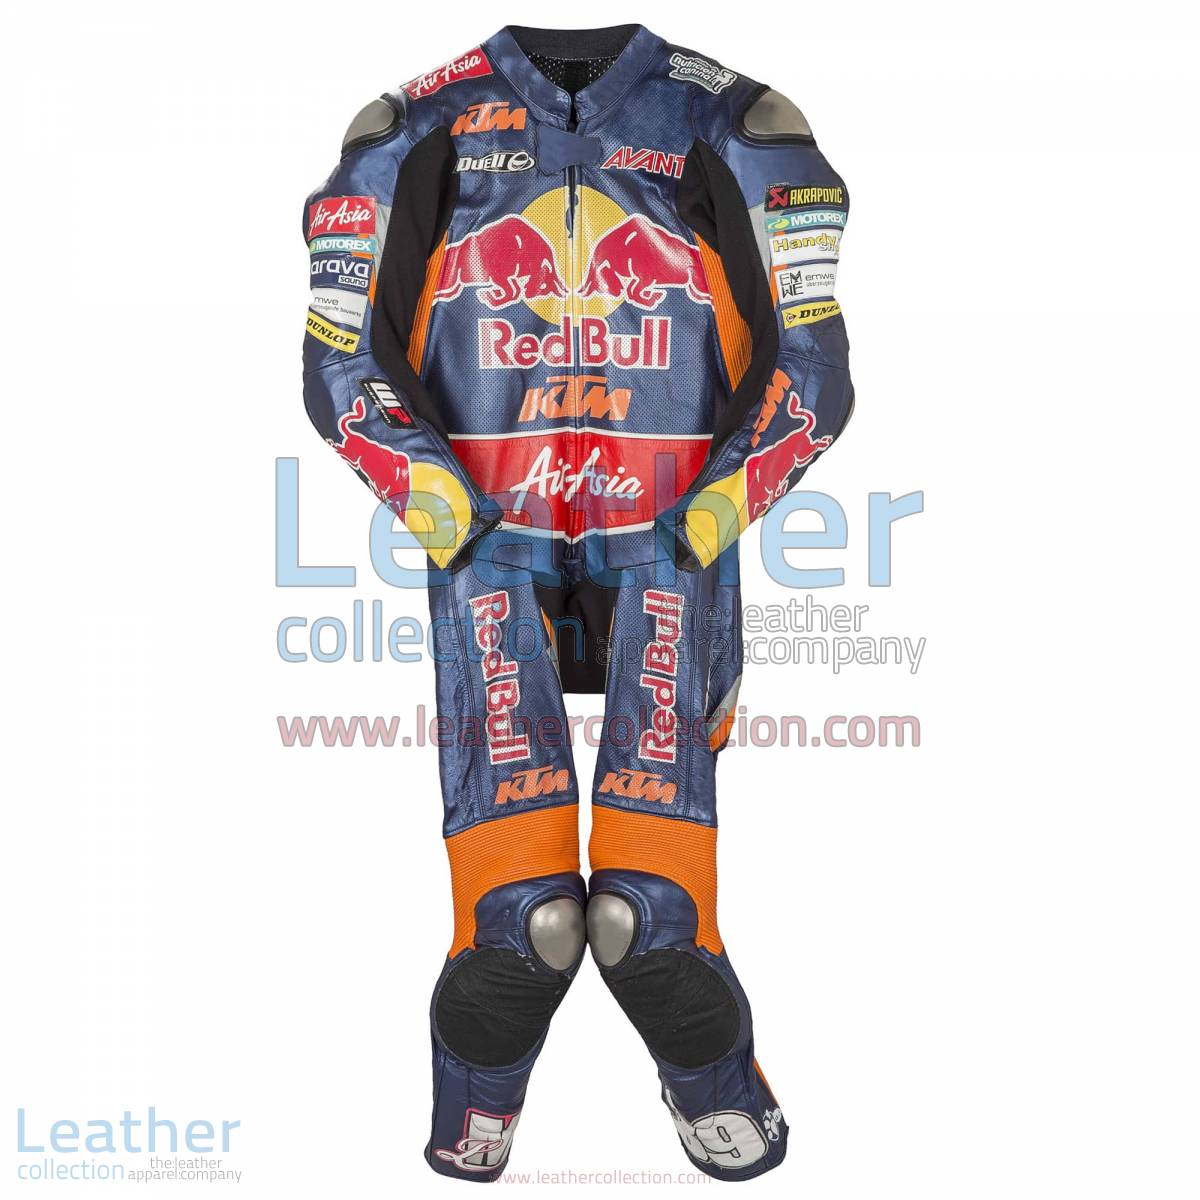 Luis Salom KTM 2013 Leather Suit | KTM suit